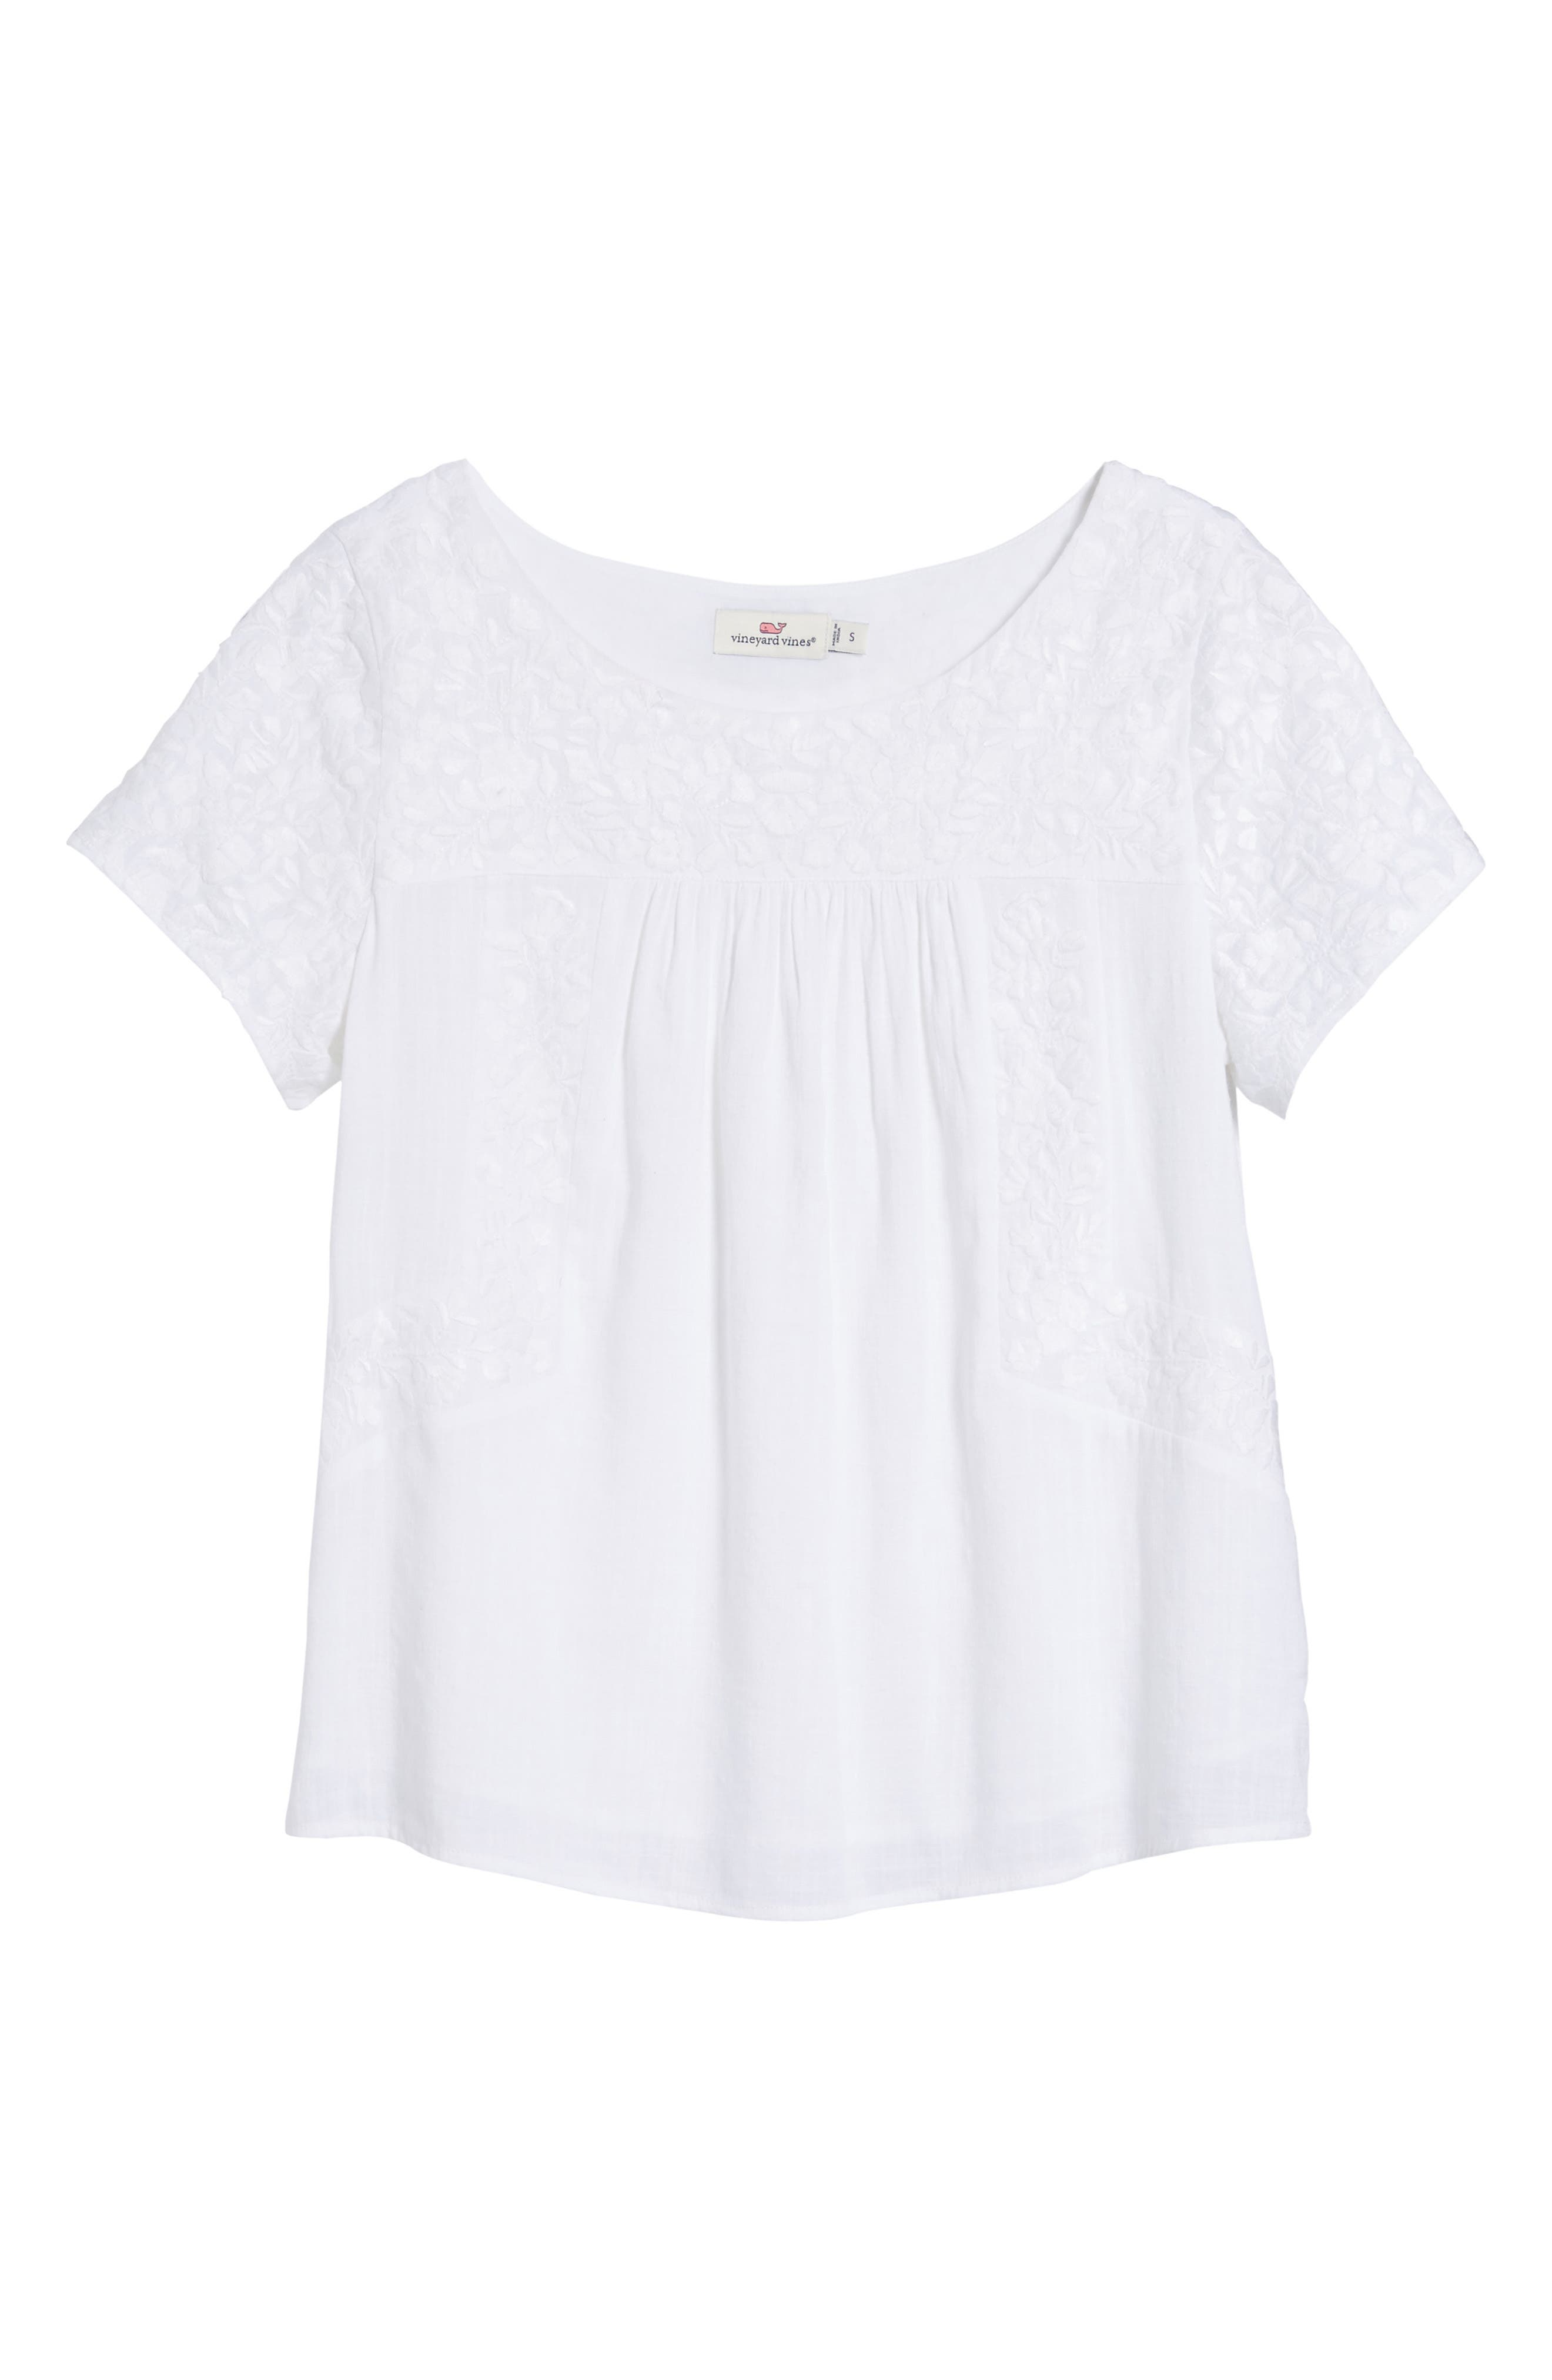 Monstera Linear Embroidered Top,                             Alternate thumbnail 6, color,                             100